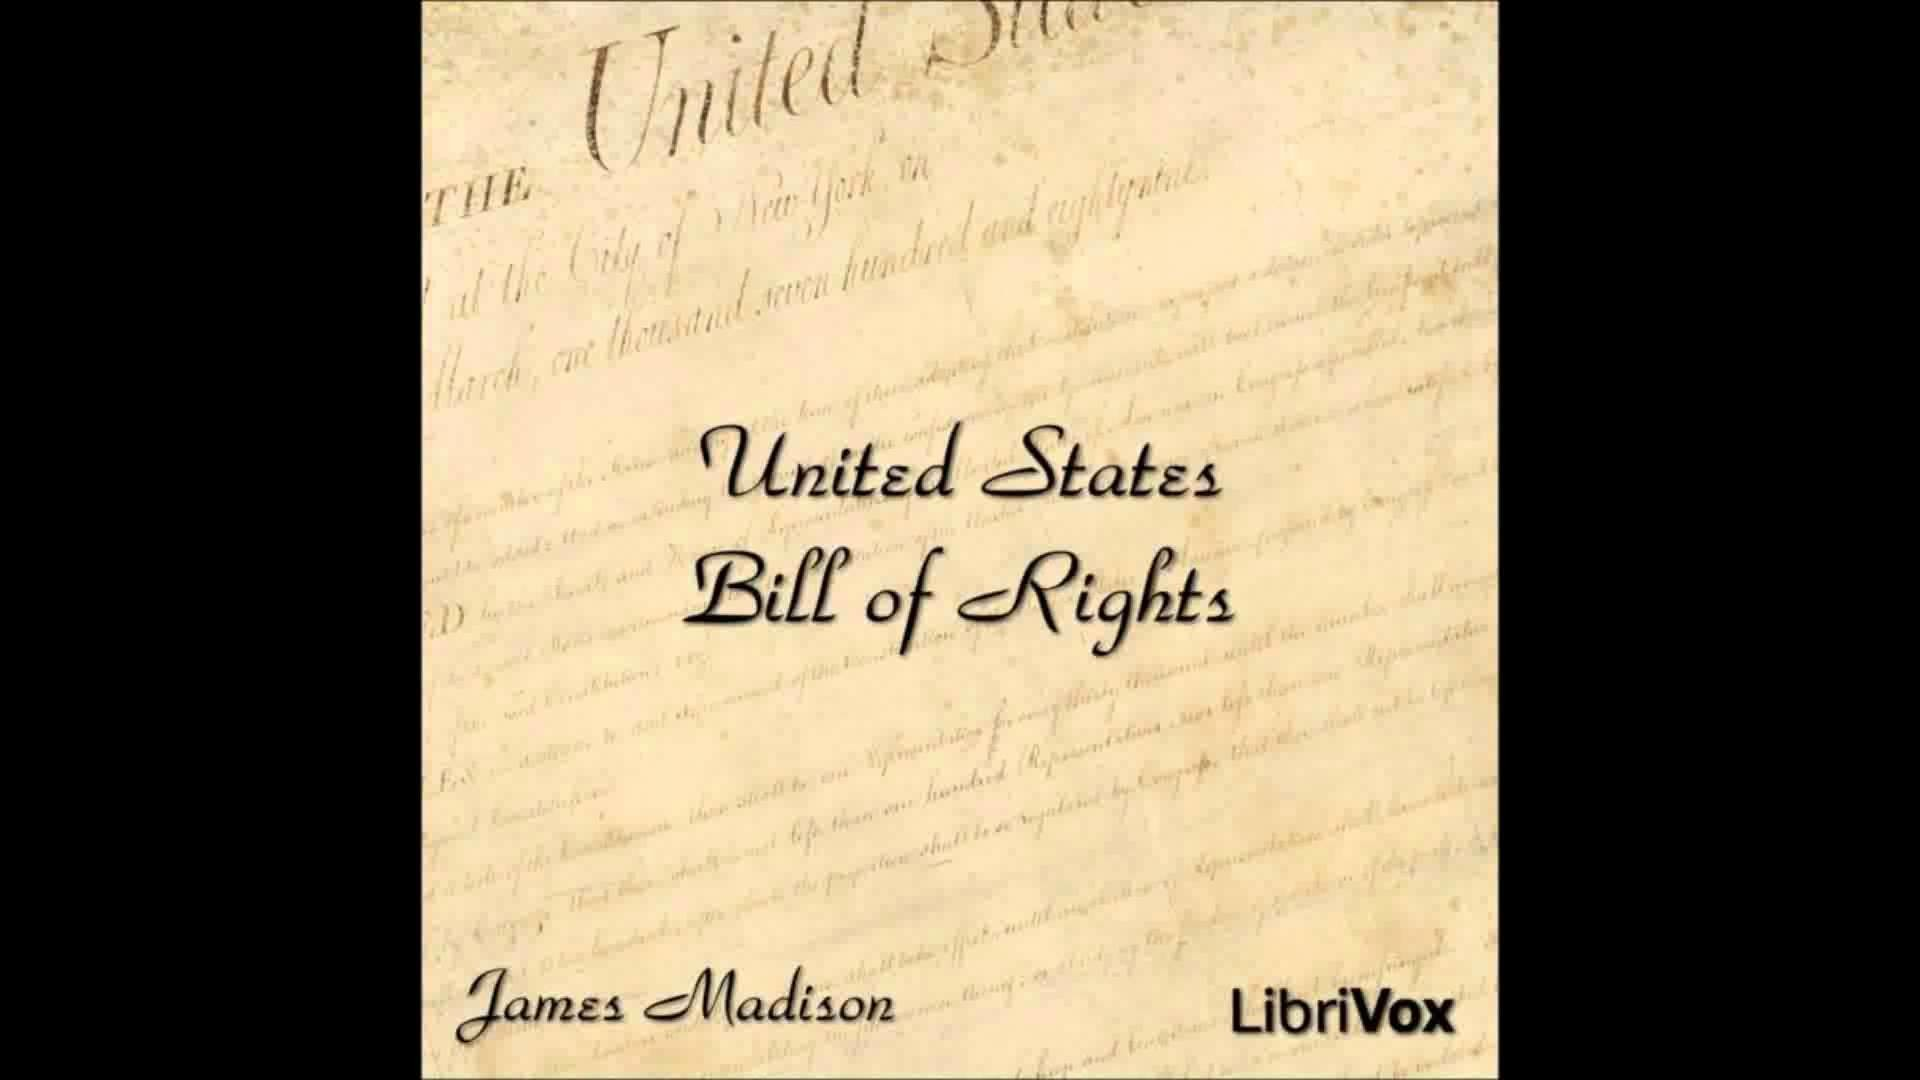 1920x1080 The United States Bill of Rights by James Madison (Historical Audio Book in  American English)